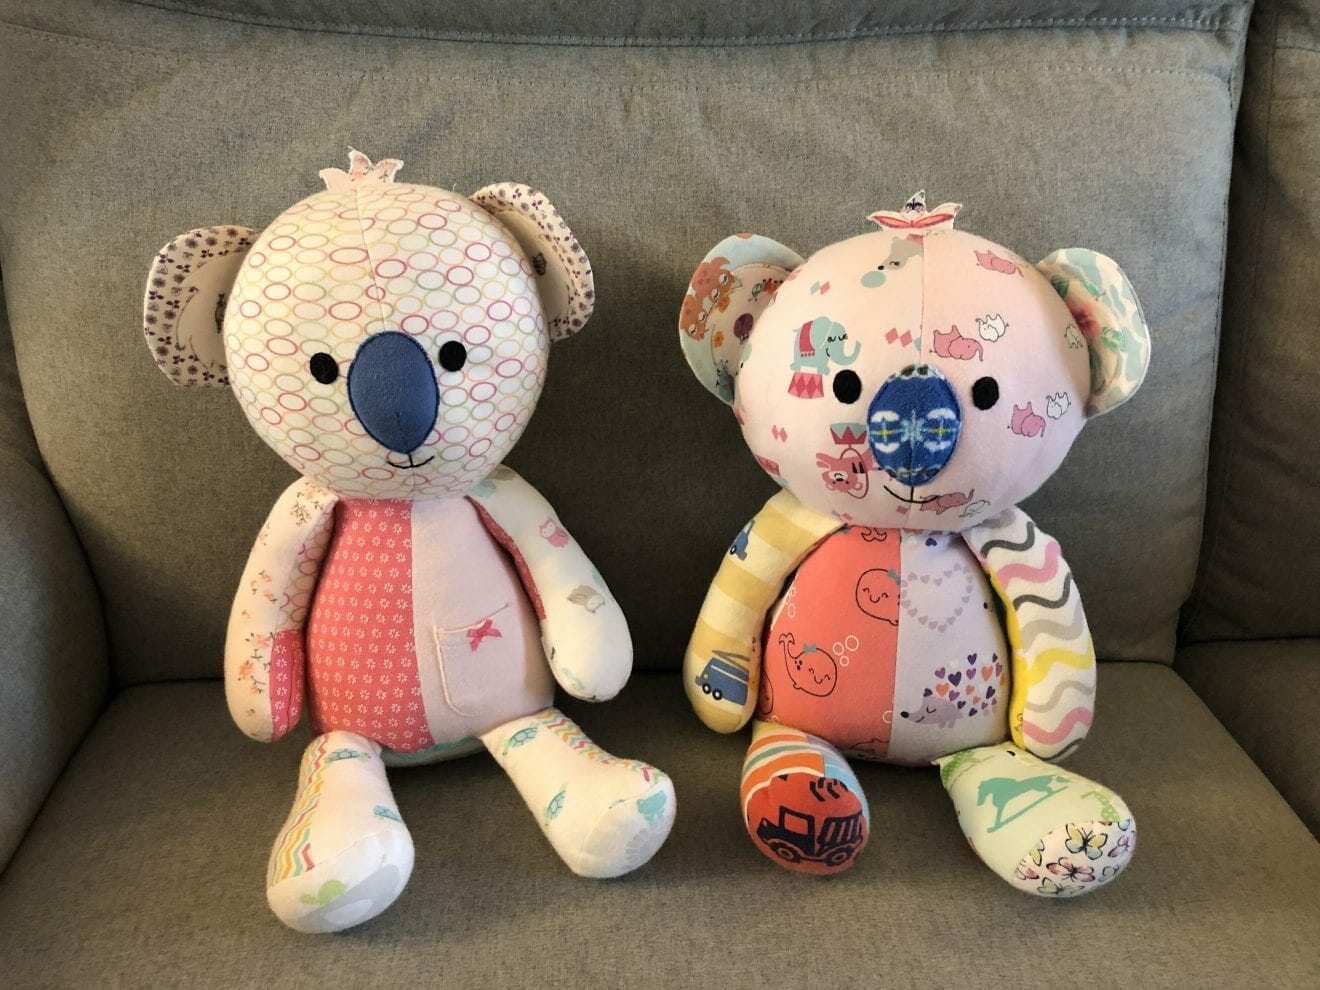 Elianna and Eli-Grace's mother Esther made these bears from their sleepers